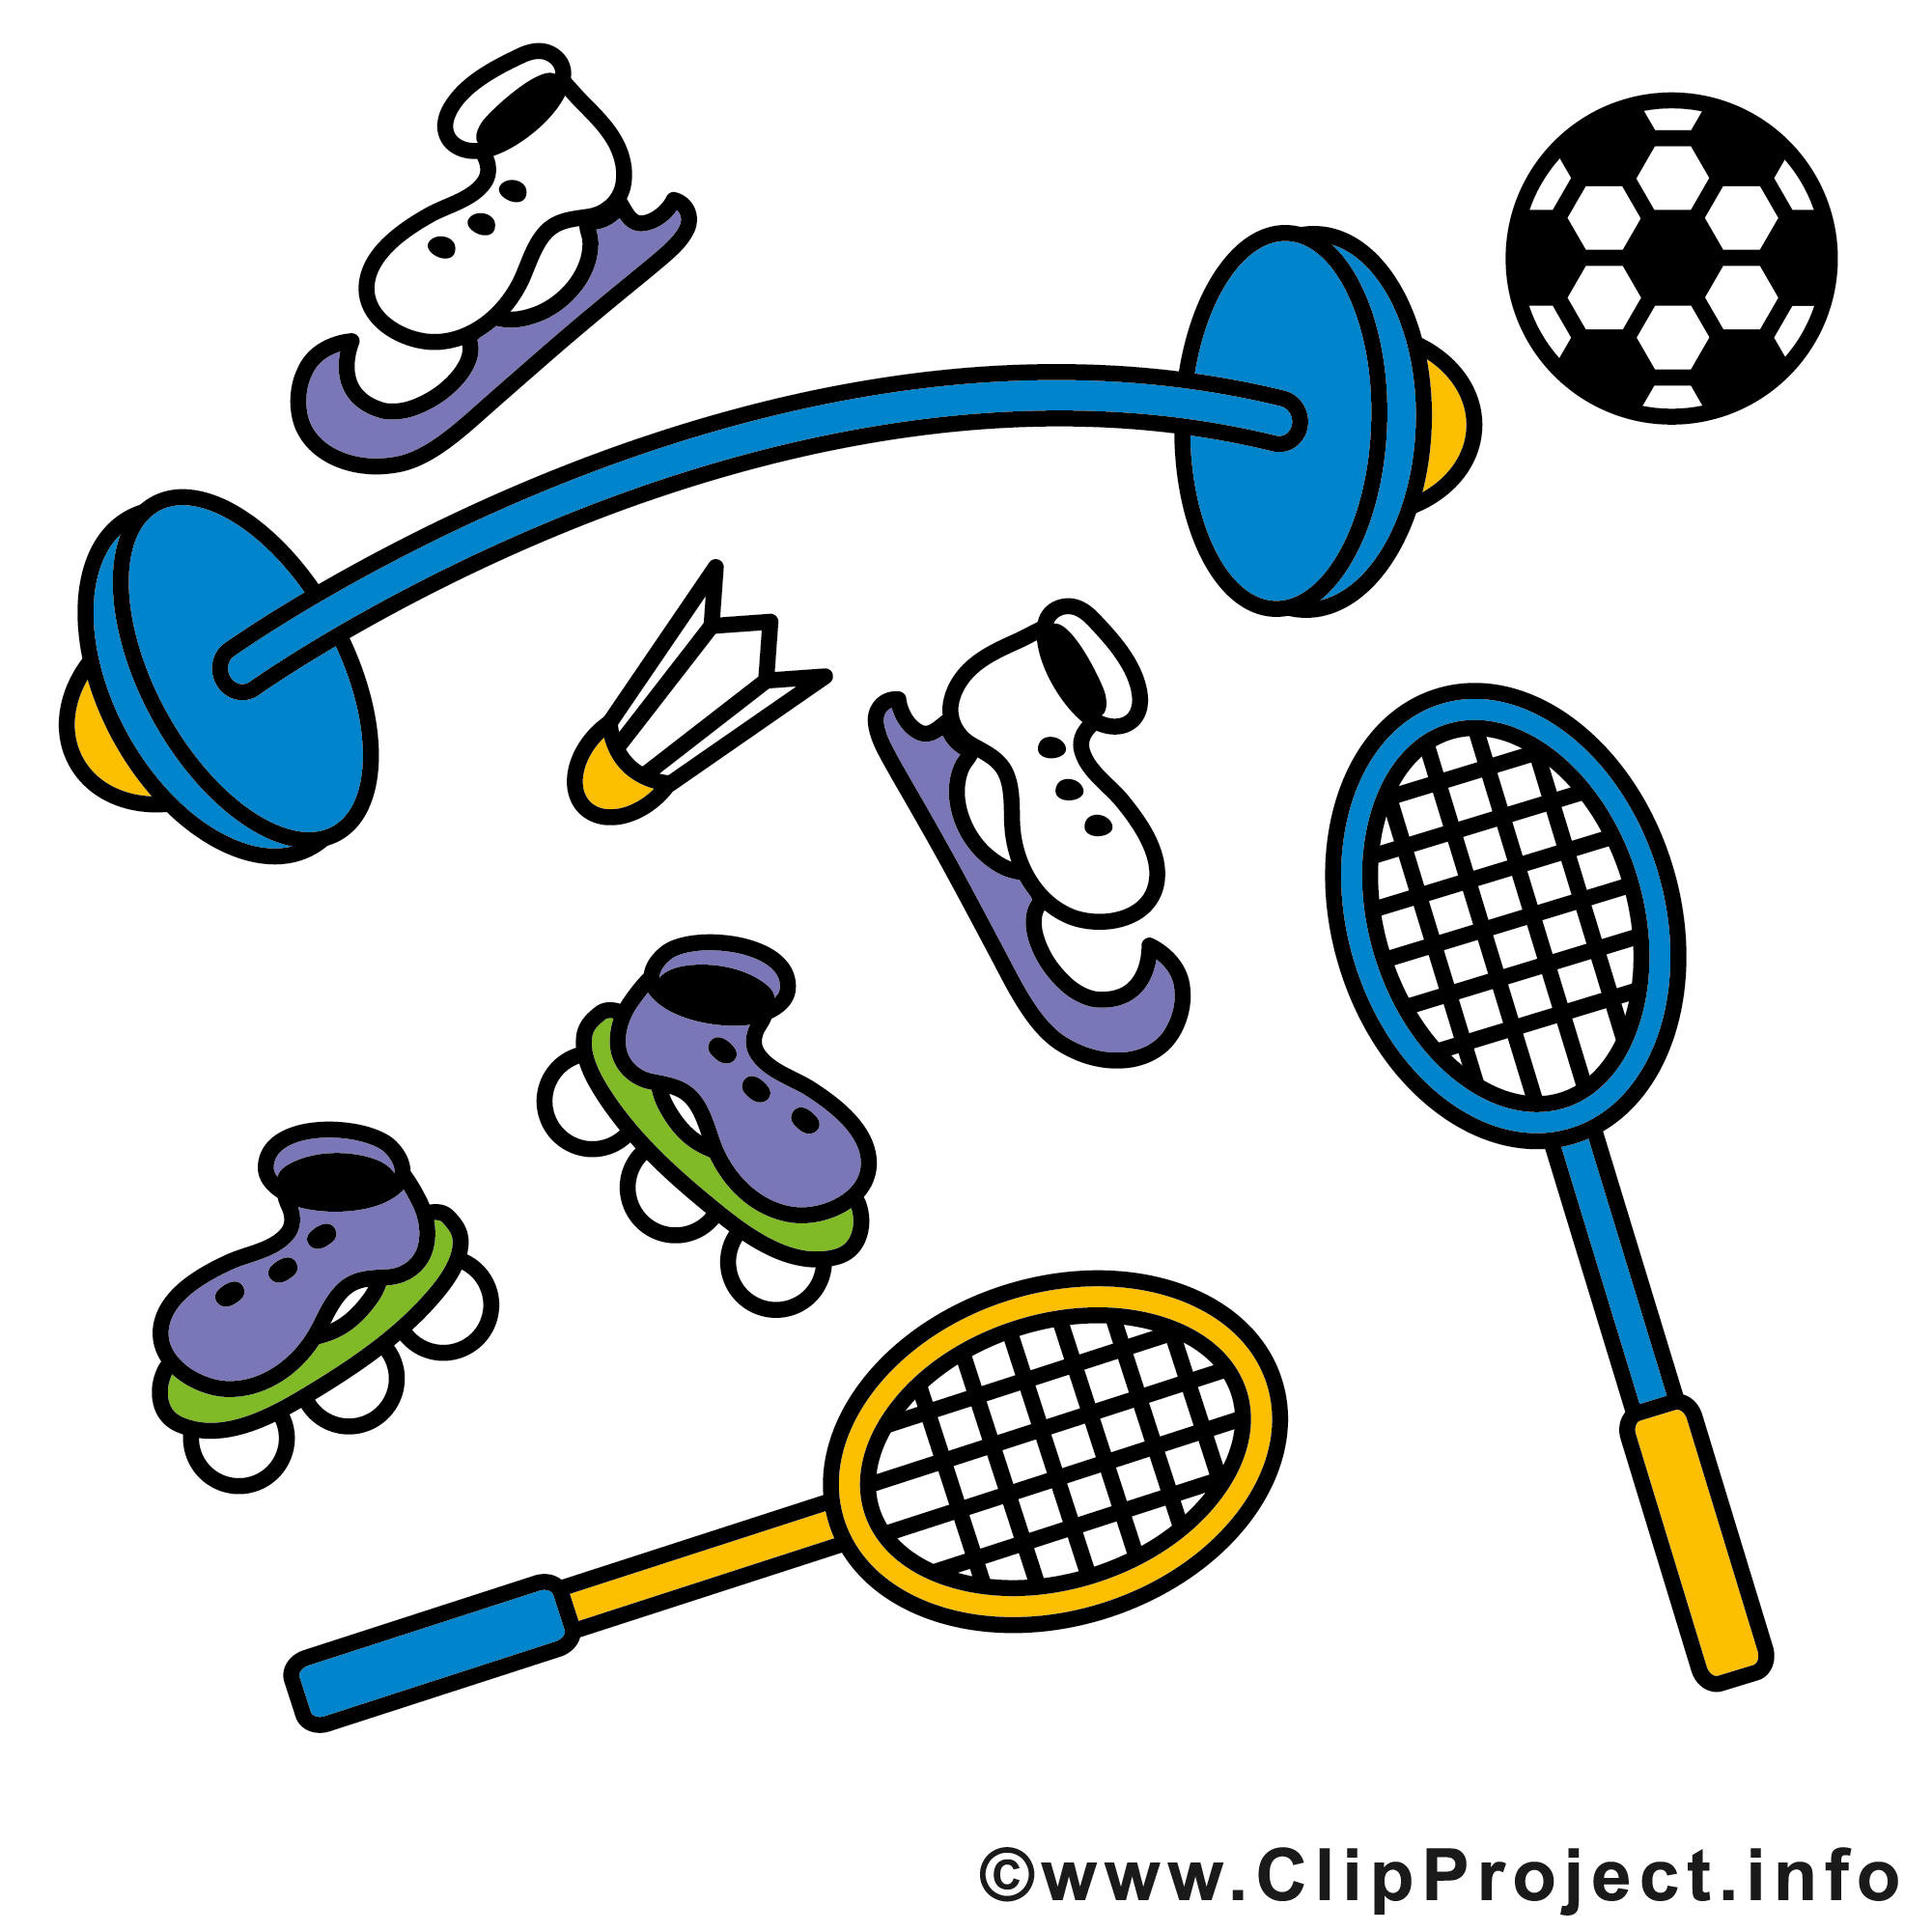 free sports graphics clipart - photo #36